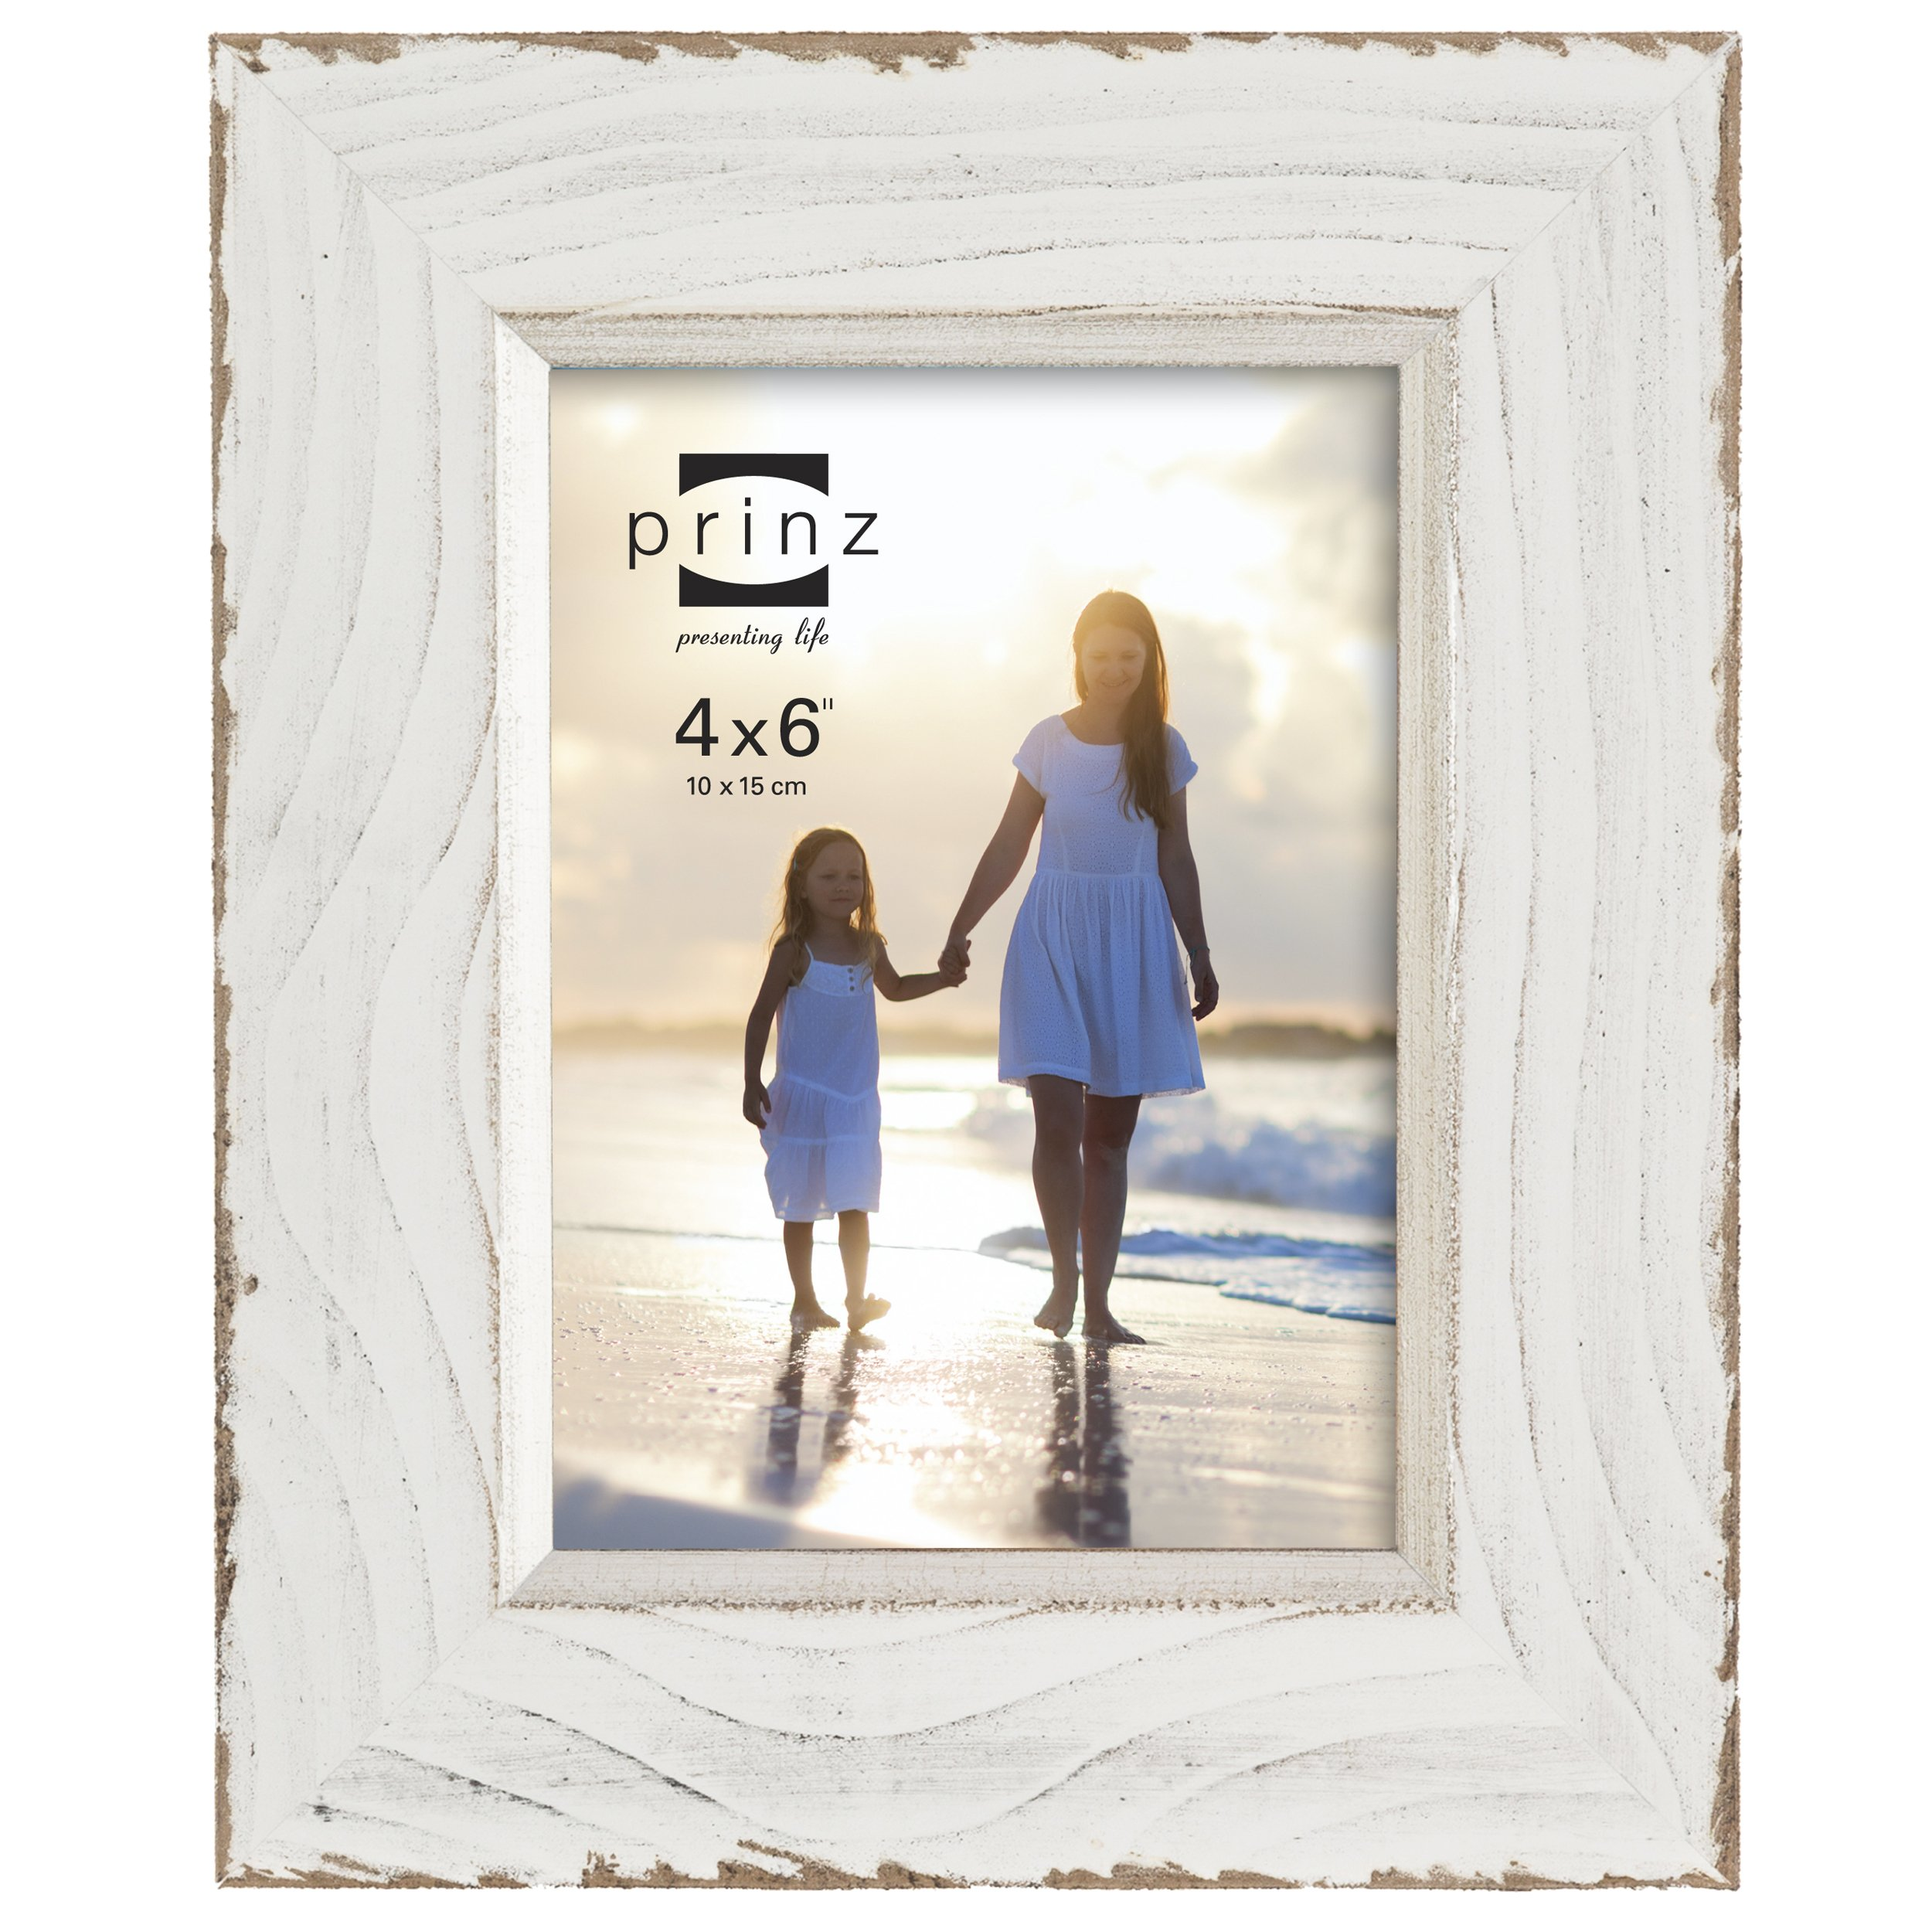 PRINZ Clearwater Distressed Wood Frame with Gilded Border, 4 by 6-Inch, White